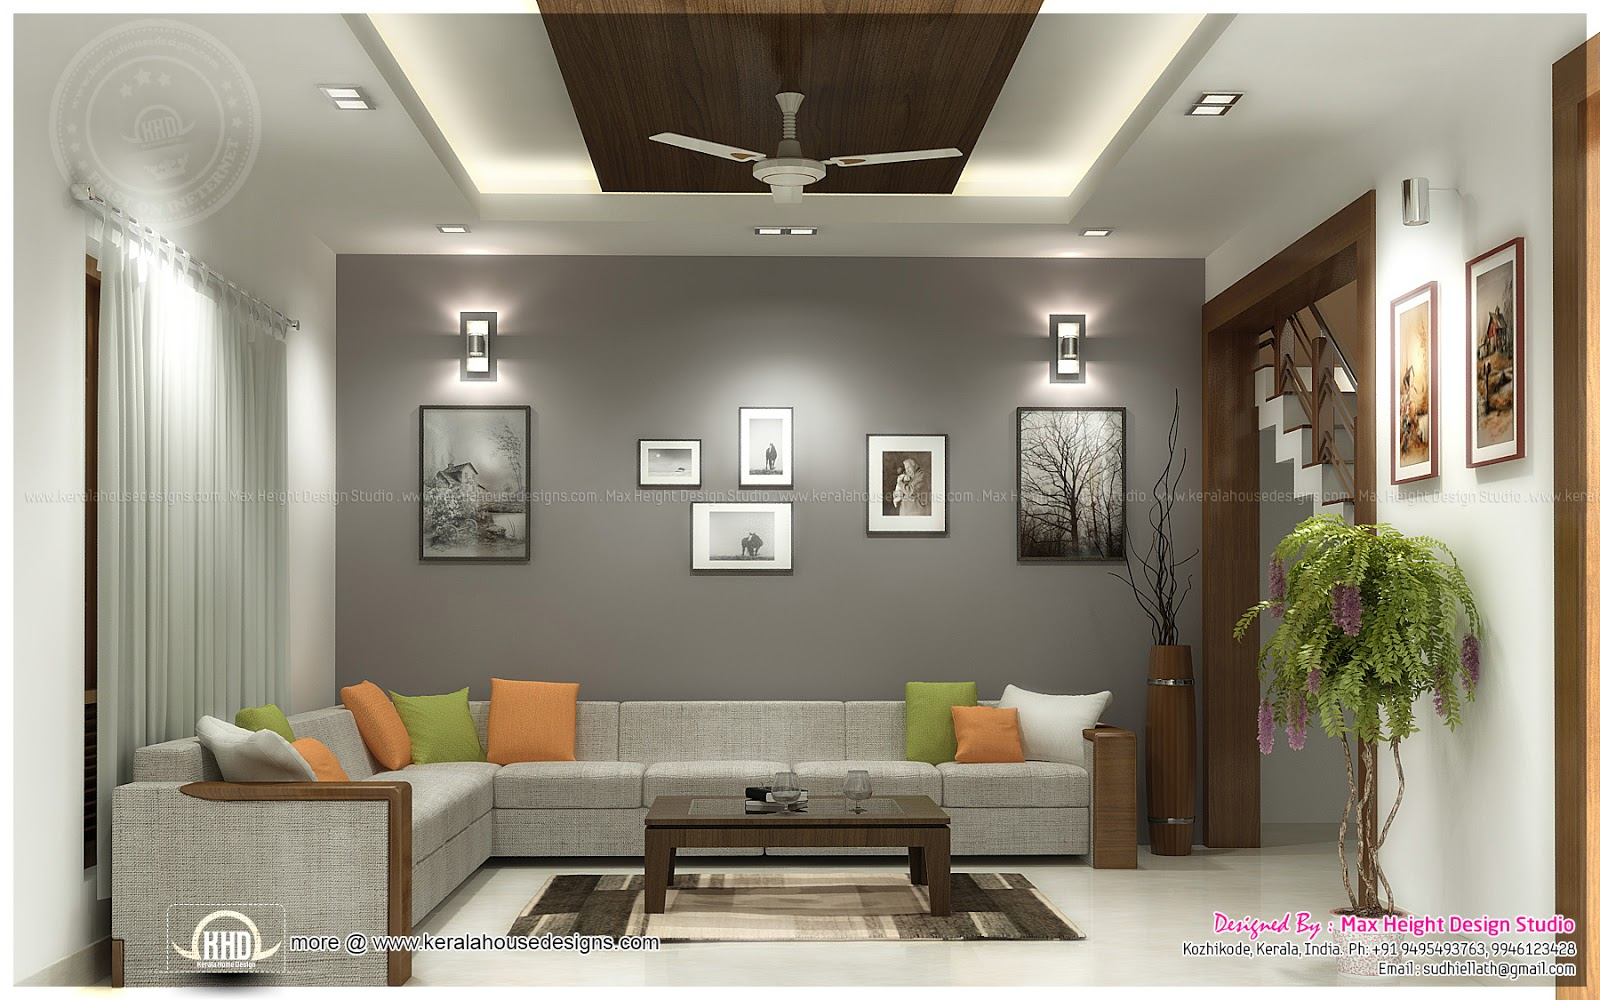 Beautiful interior ideas for home kerala home design and for Indoor design home